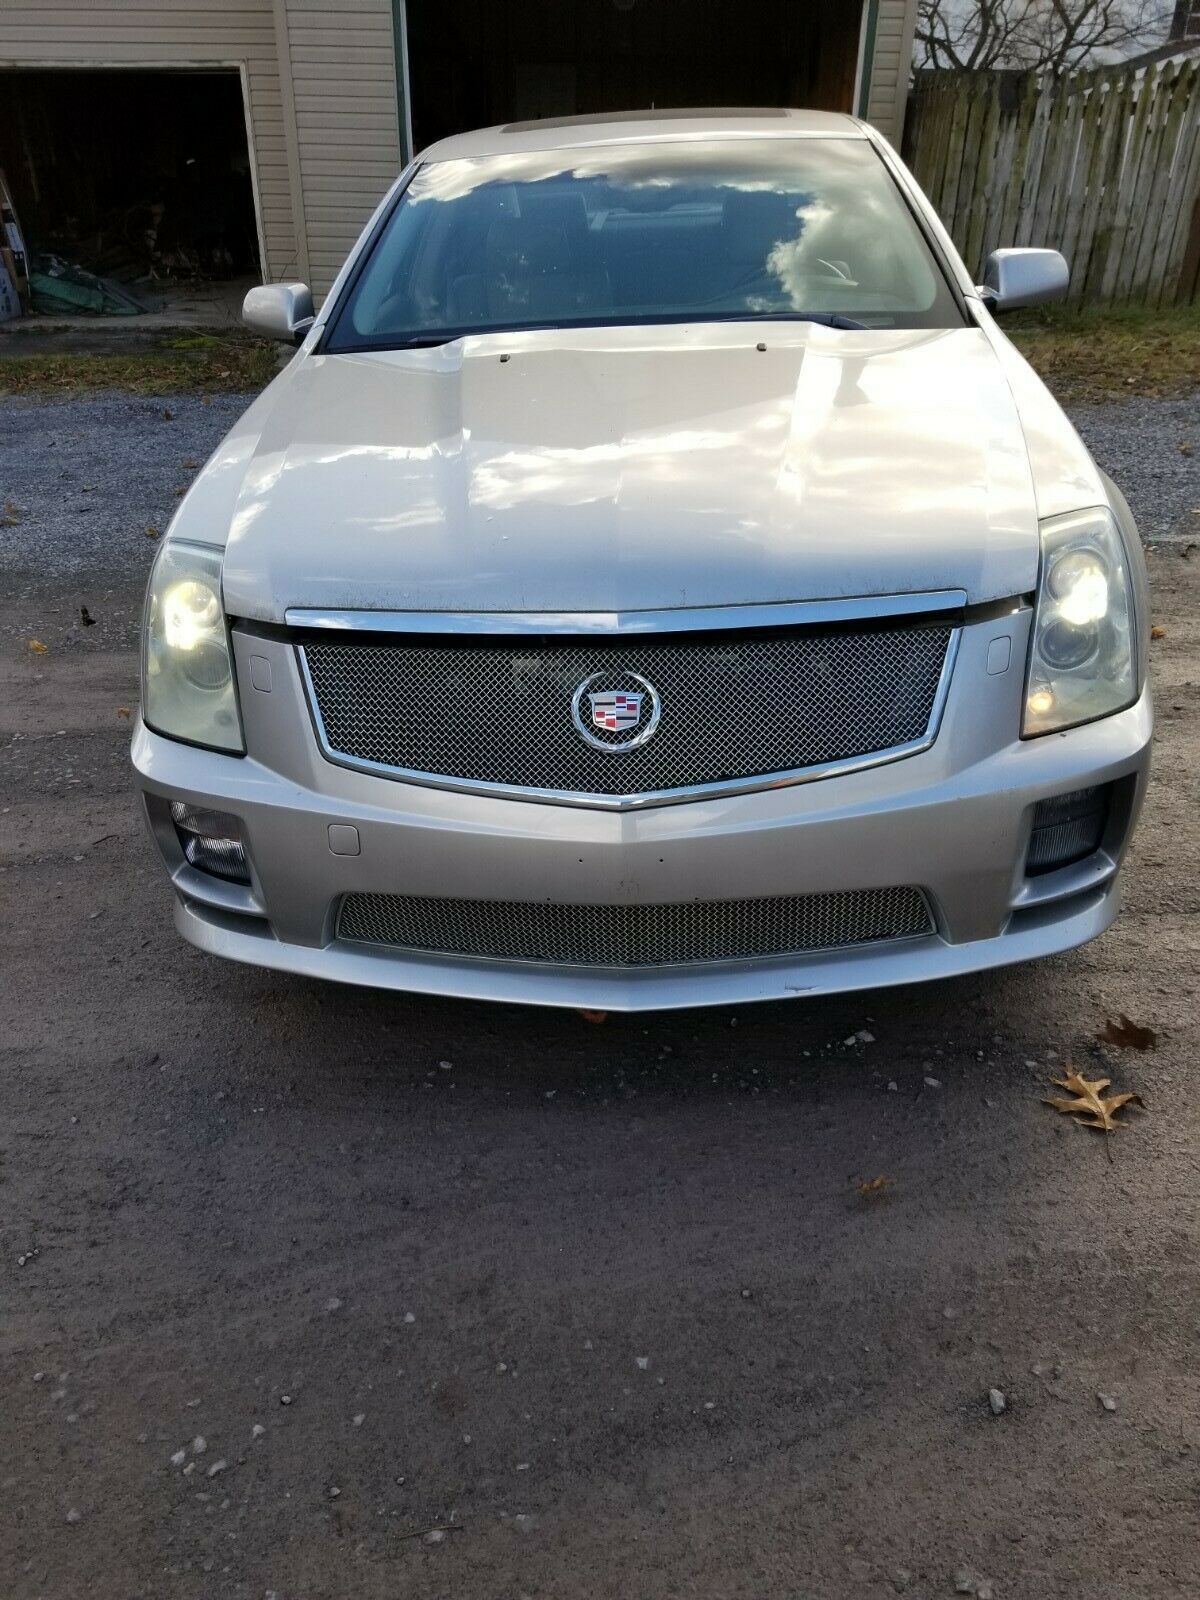 2006 Cadillac Sts-v Supercharged 4.4l - Used Cadillac Sts ...